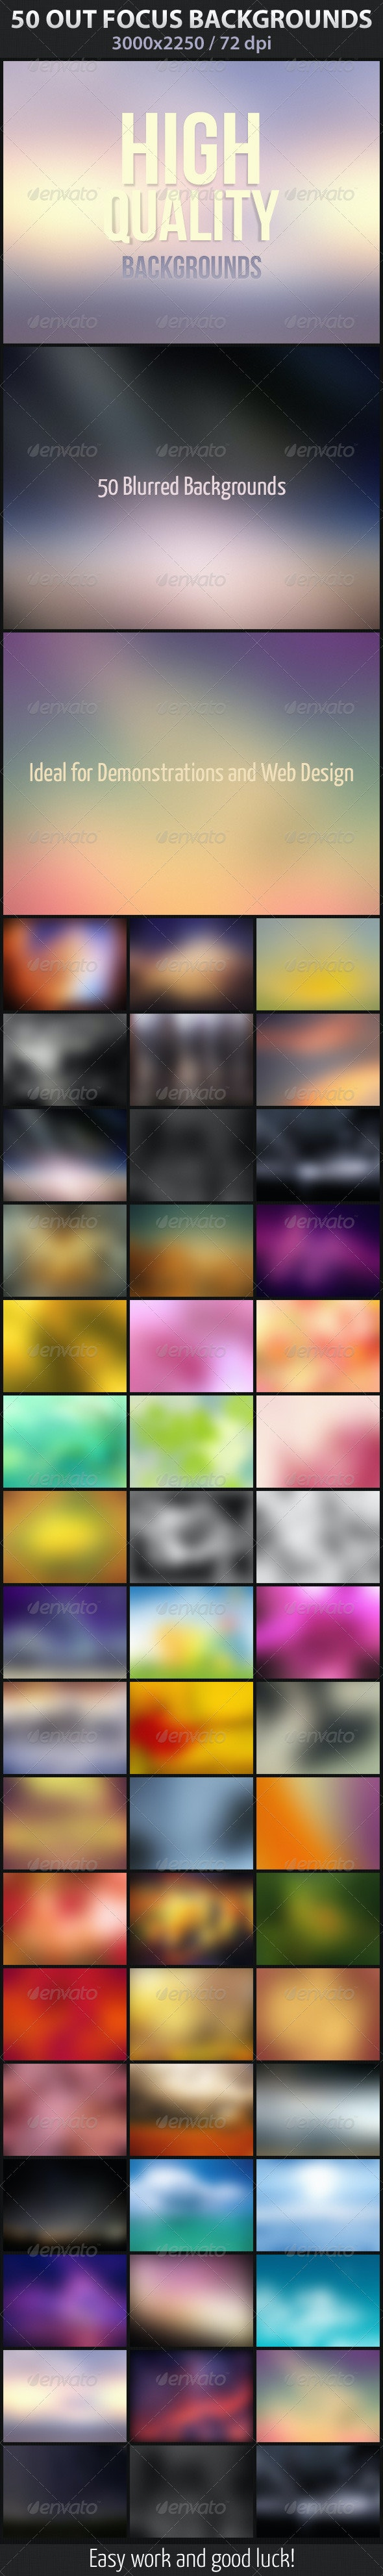 50 Out Focus Backgrounds - Abstract Backgrounds